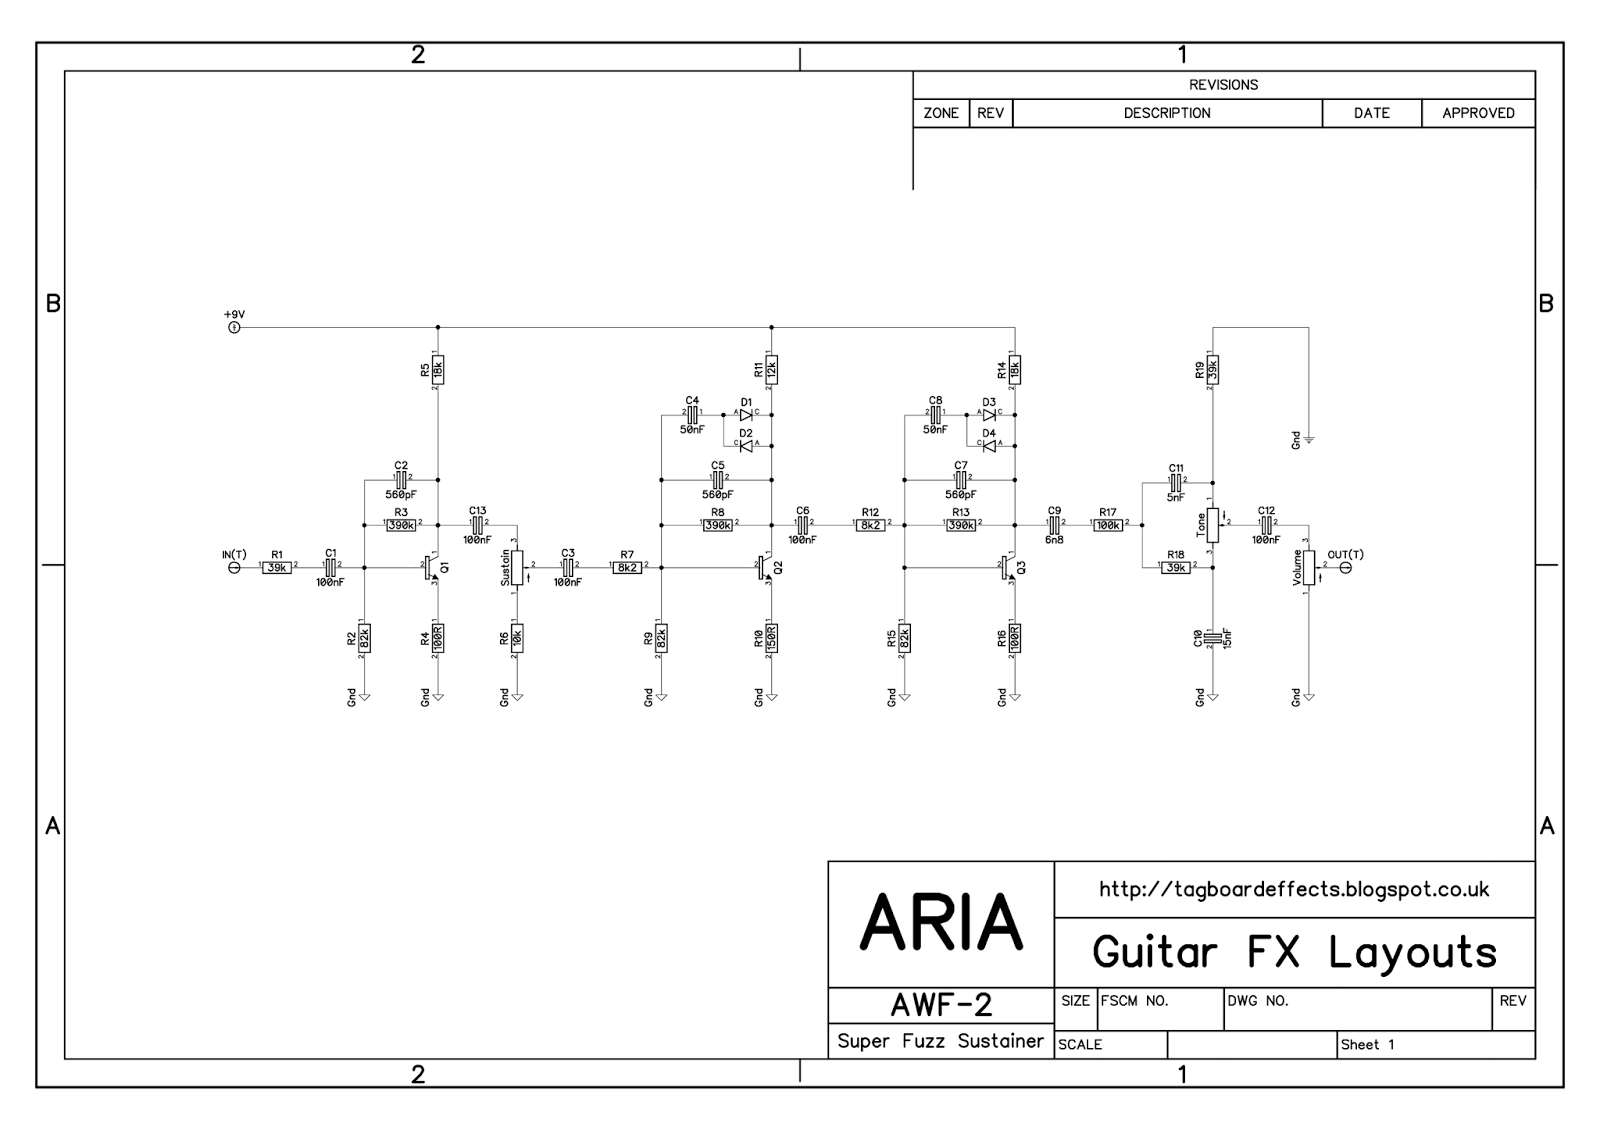 aria wiring diagram - circuit connection diagram free download bass wiring diagram